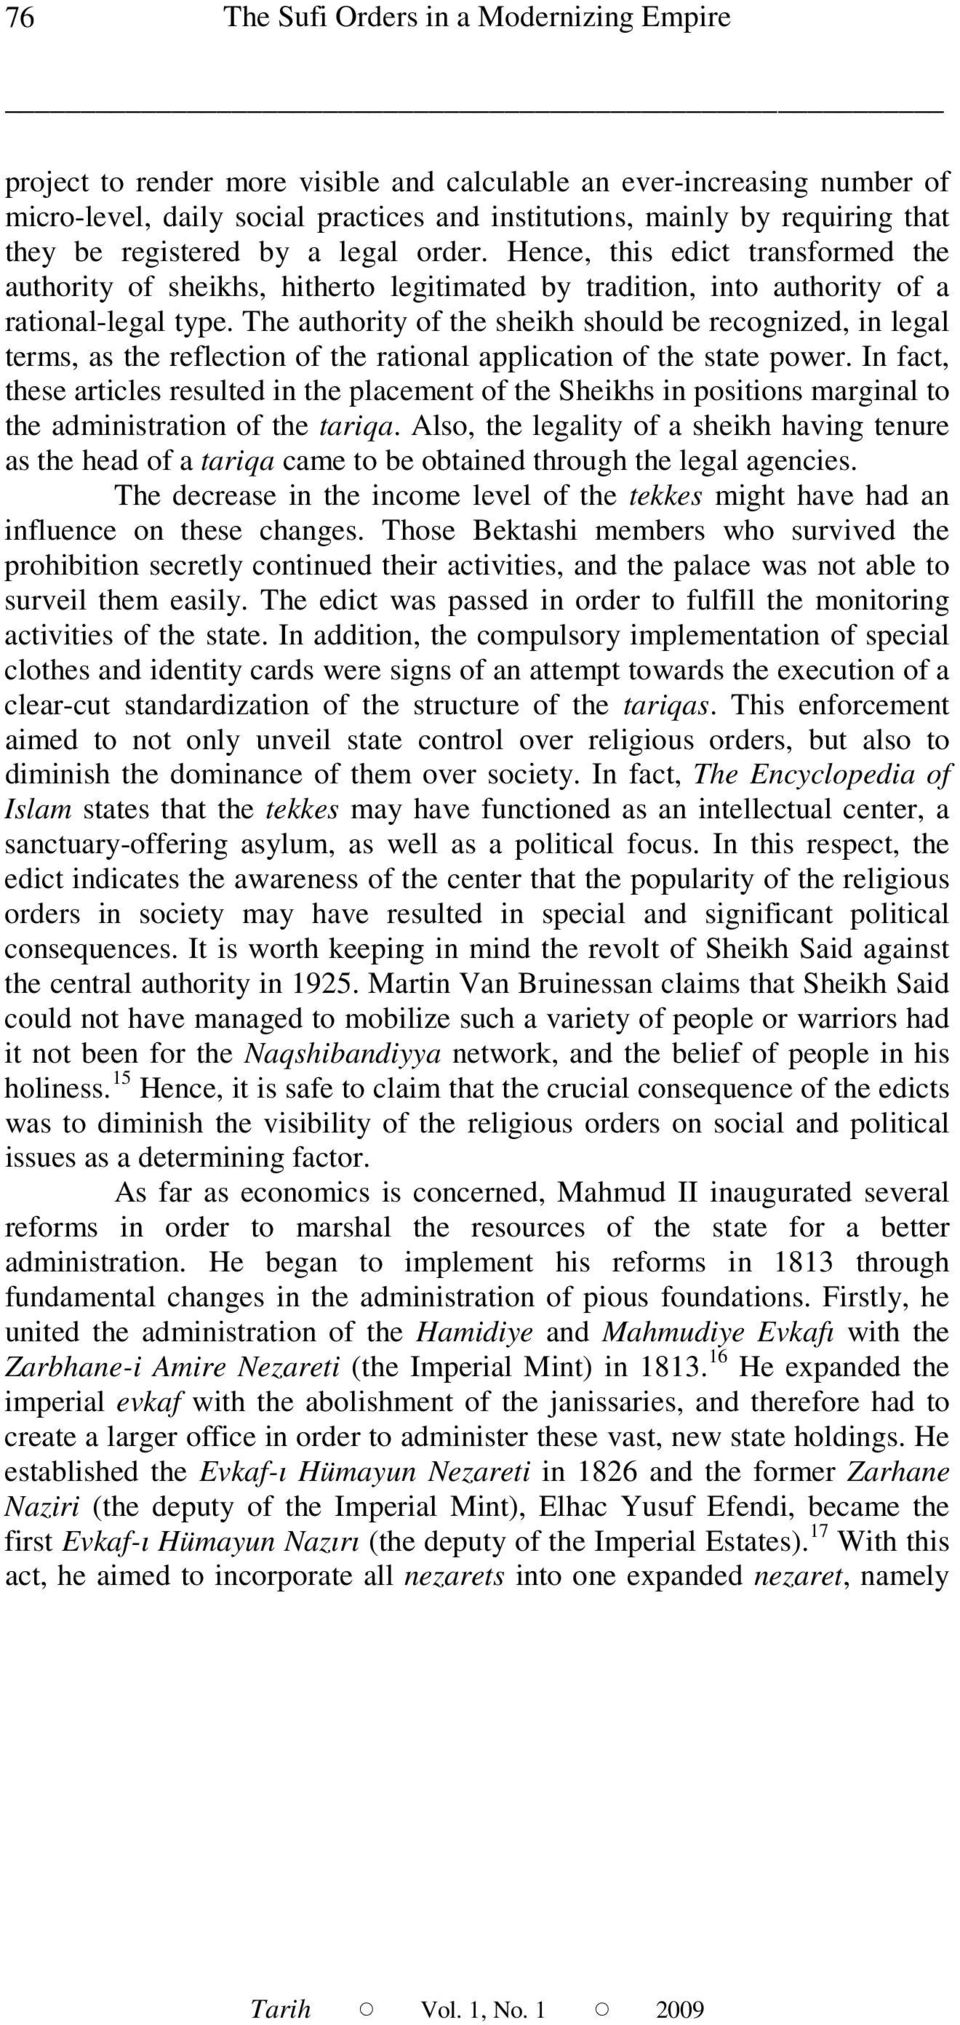 The authority of the sheikh should be recognized, in legal terms, as the reflection of the rational application of the state power.